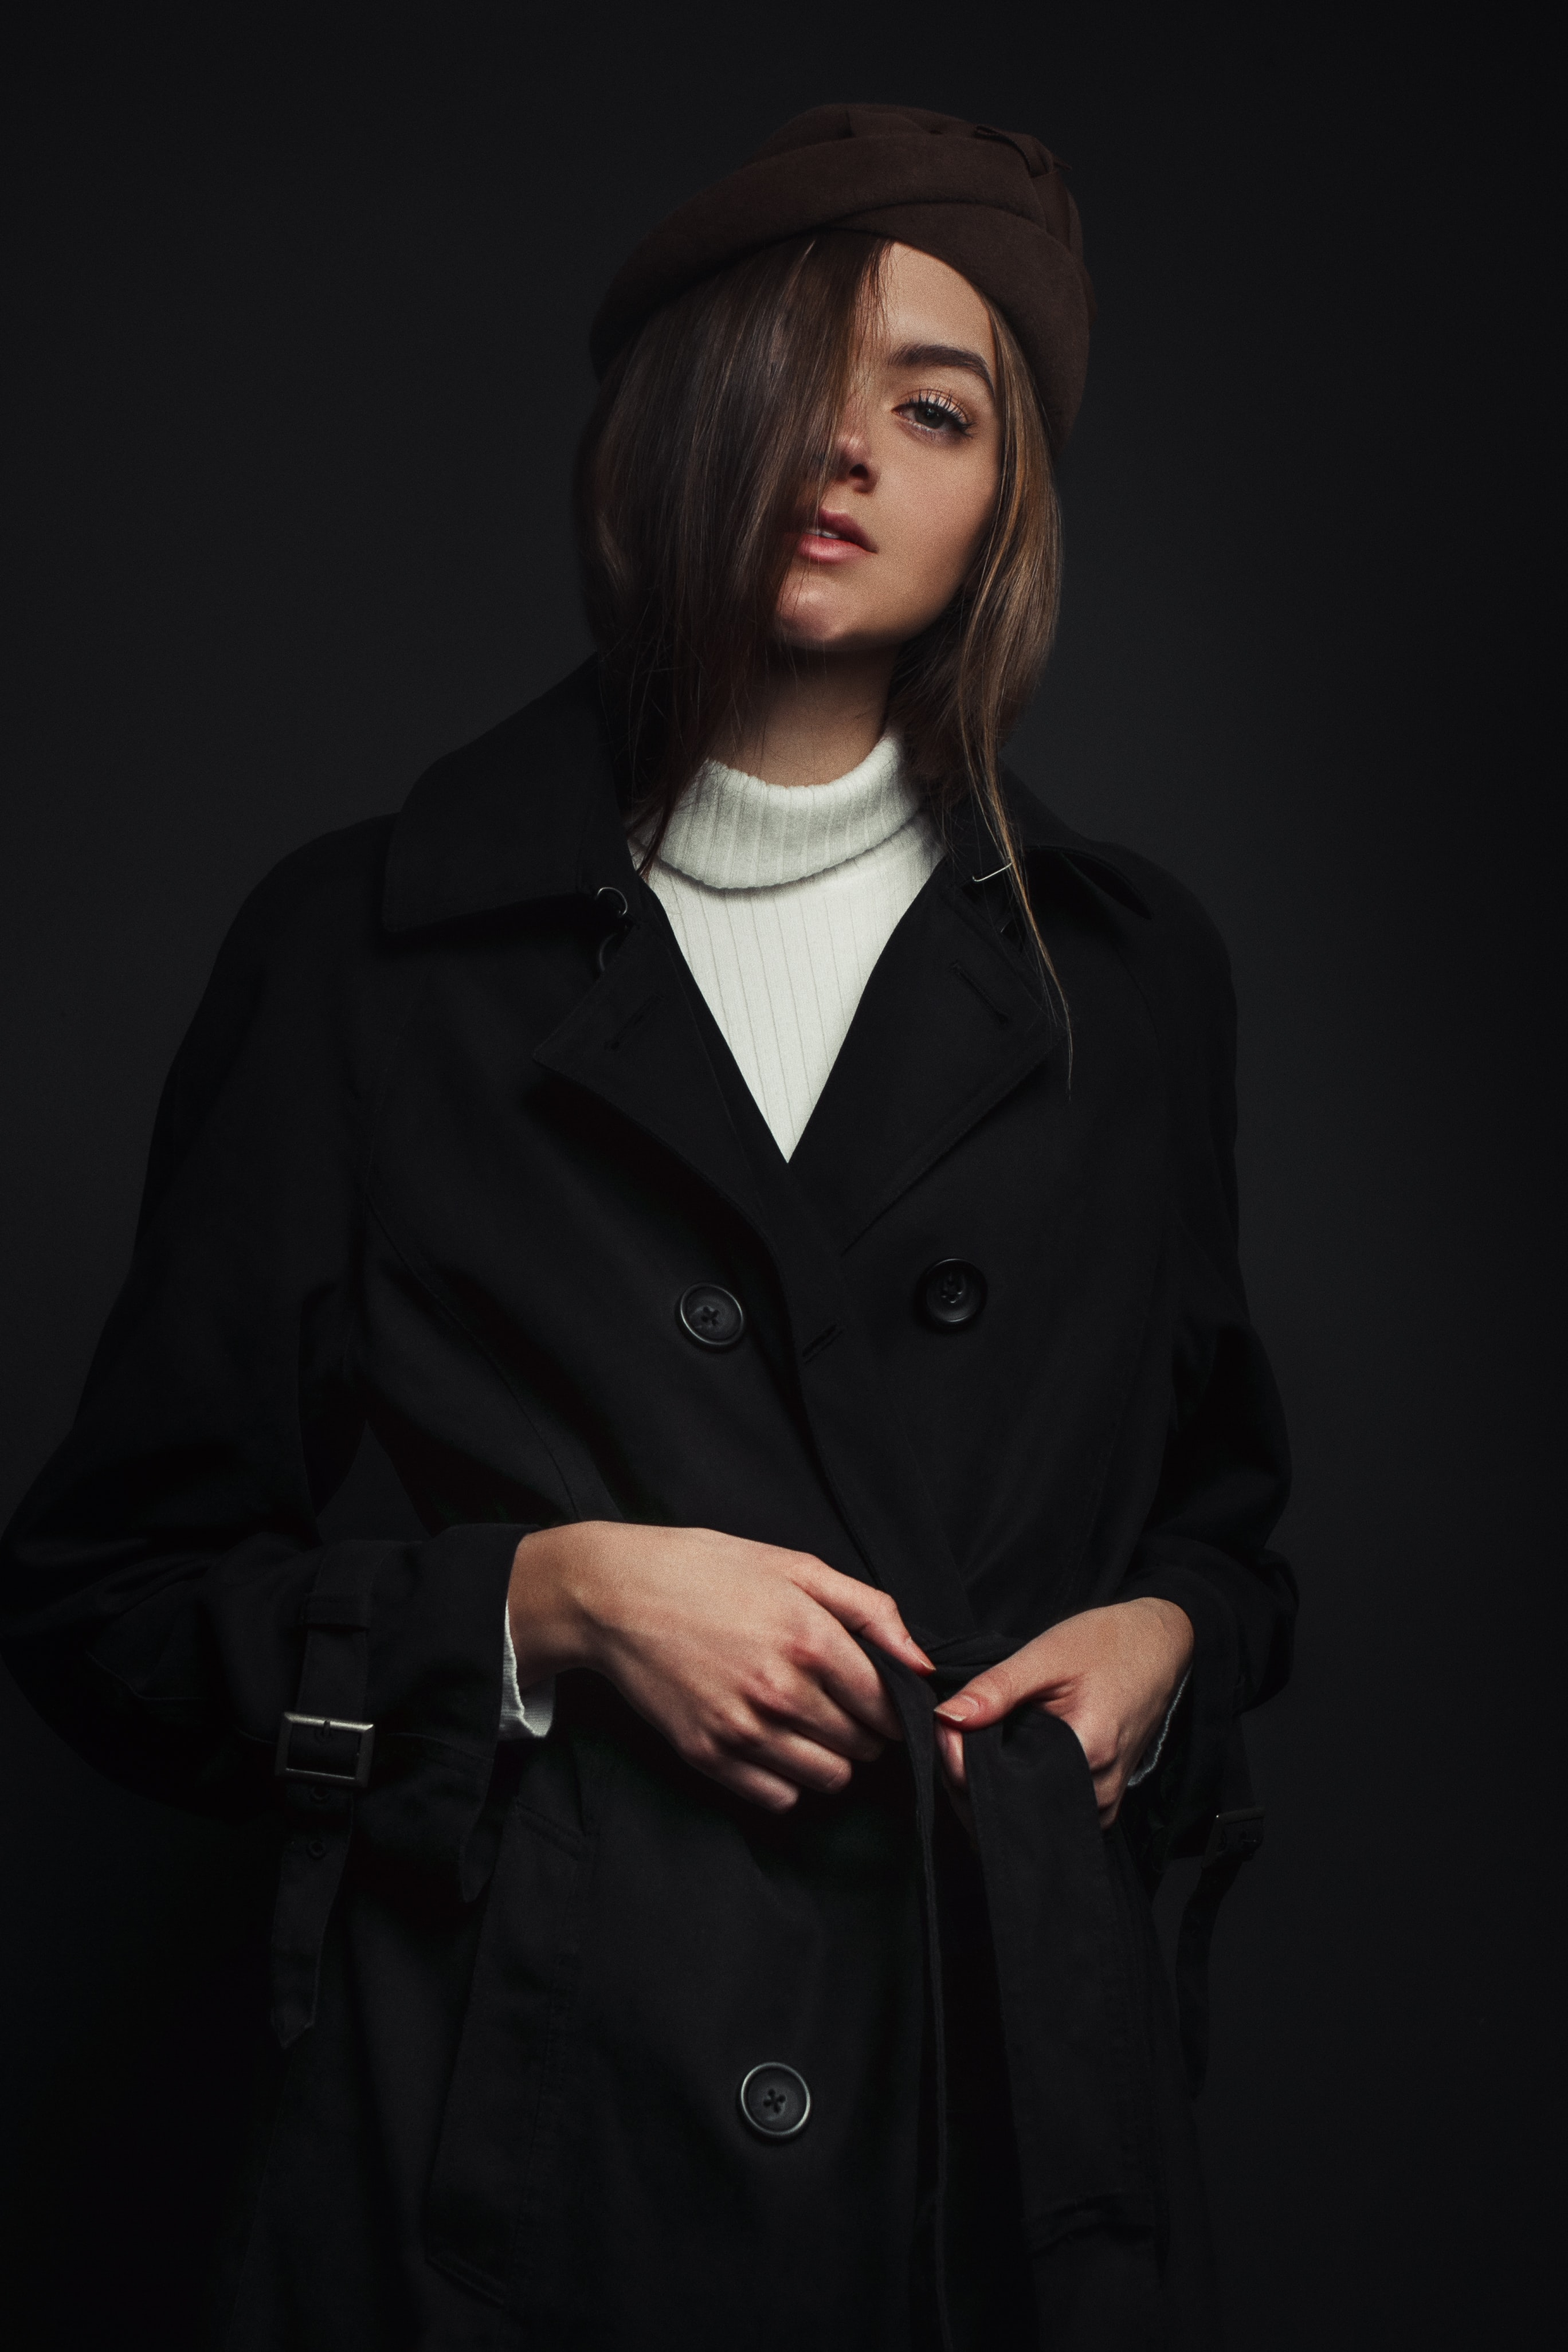 woman wearing black double breasted coat